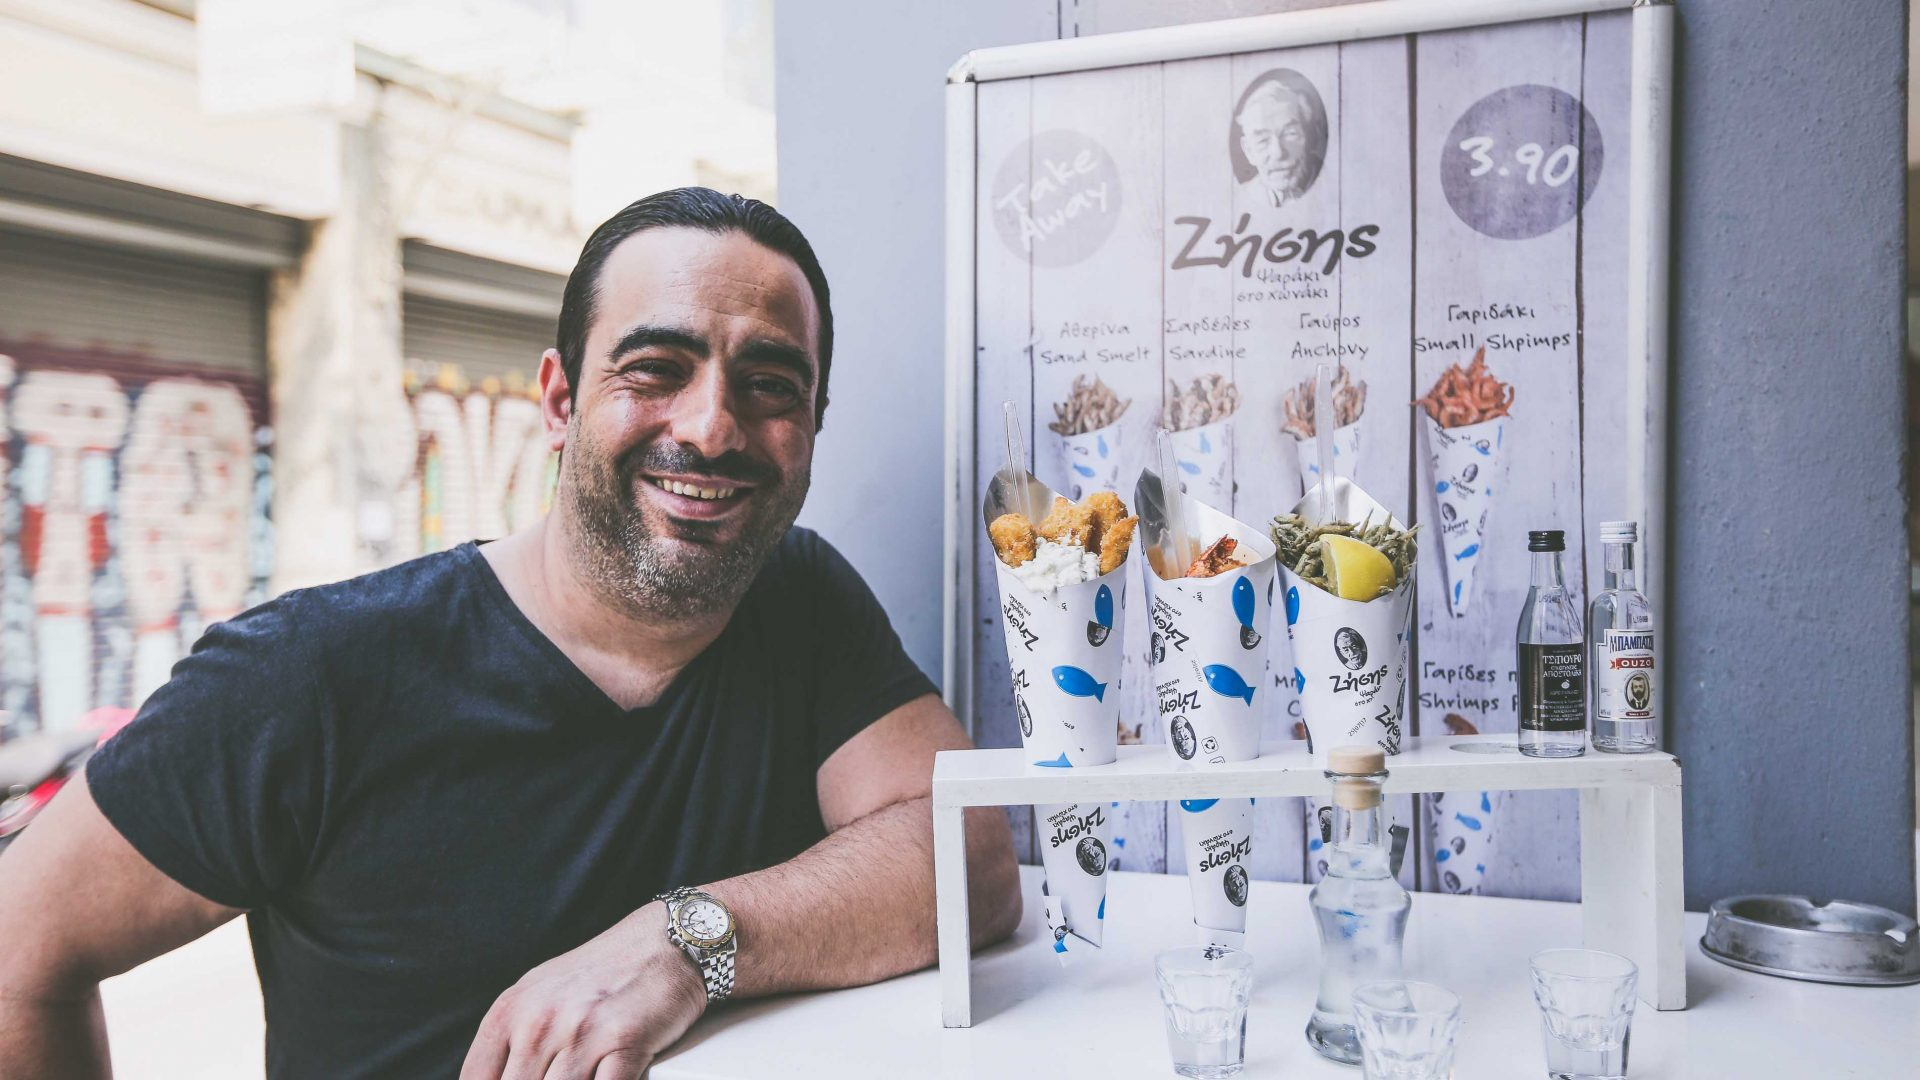 Athens street food: Zisis manager, Pantellis Michailidis, with the famed 'fish in a cone'.